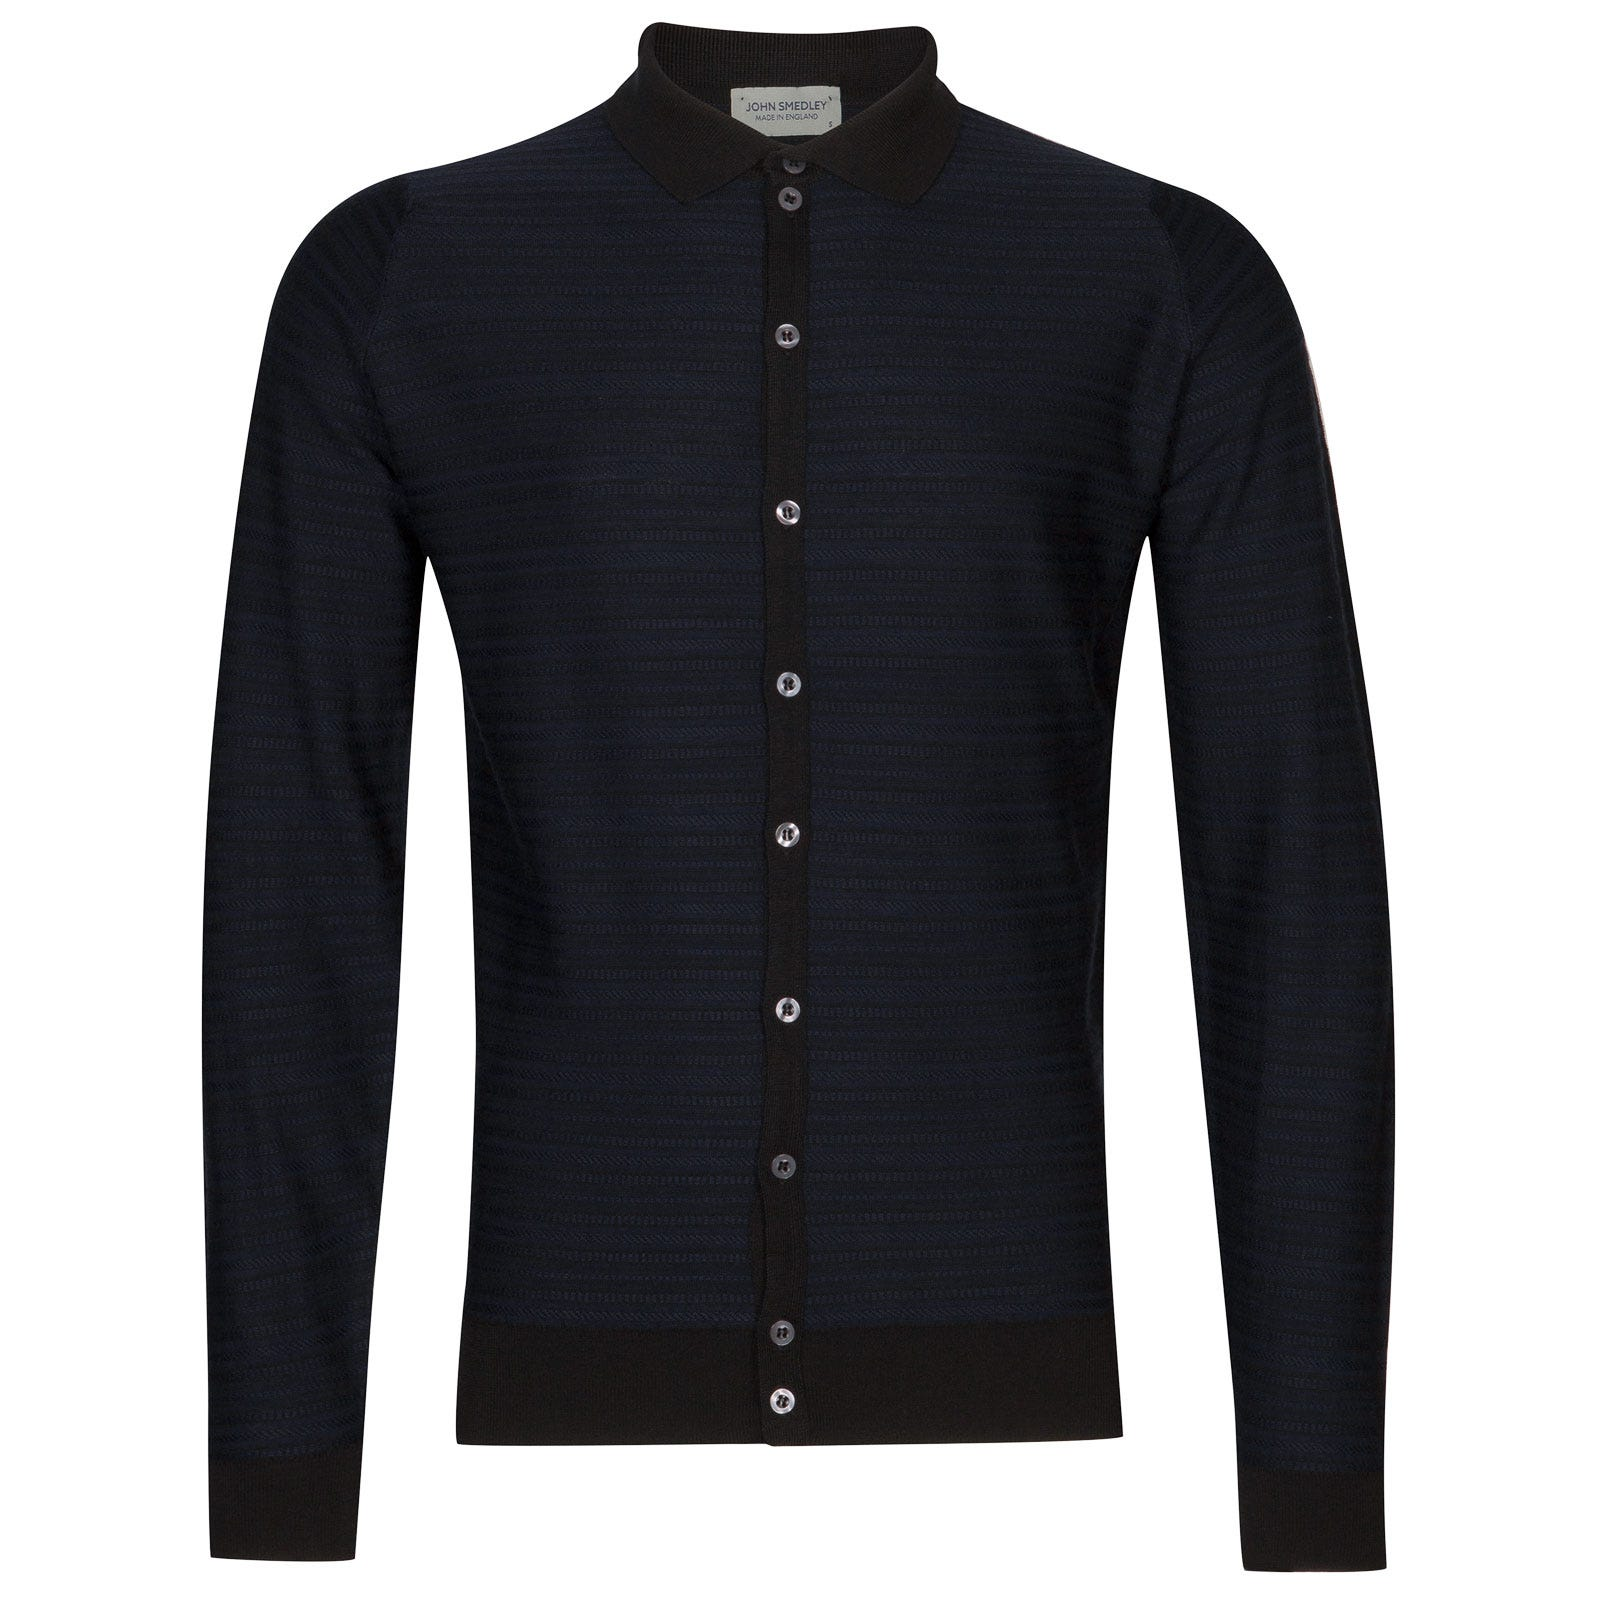 John Smedley hemlock Merino Wool Shirt in Black/Midnight-L